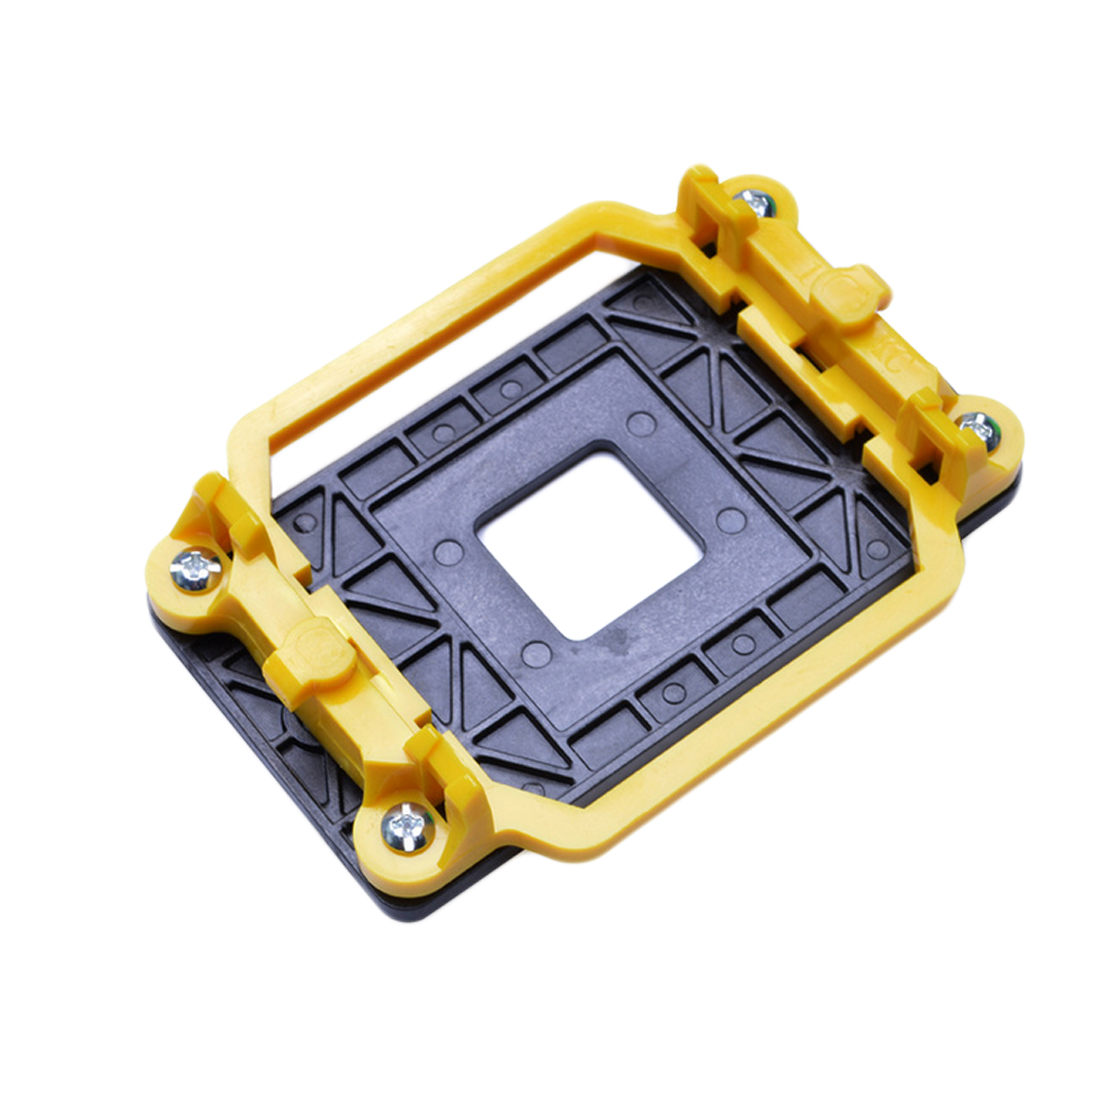 Etmakit  CPU Cooler Bracket Motherboard for AMD AM2/AM2+/AM3/AM3+/FM1/FM2/FM2+/940/939 Install the fastening